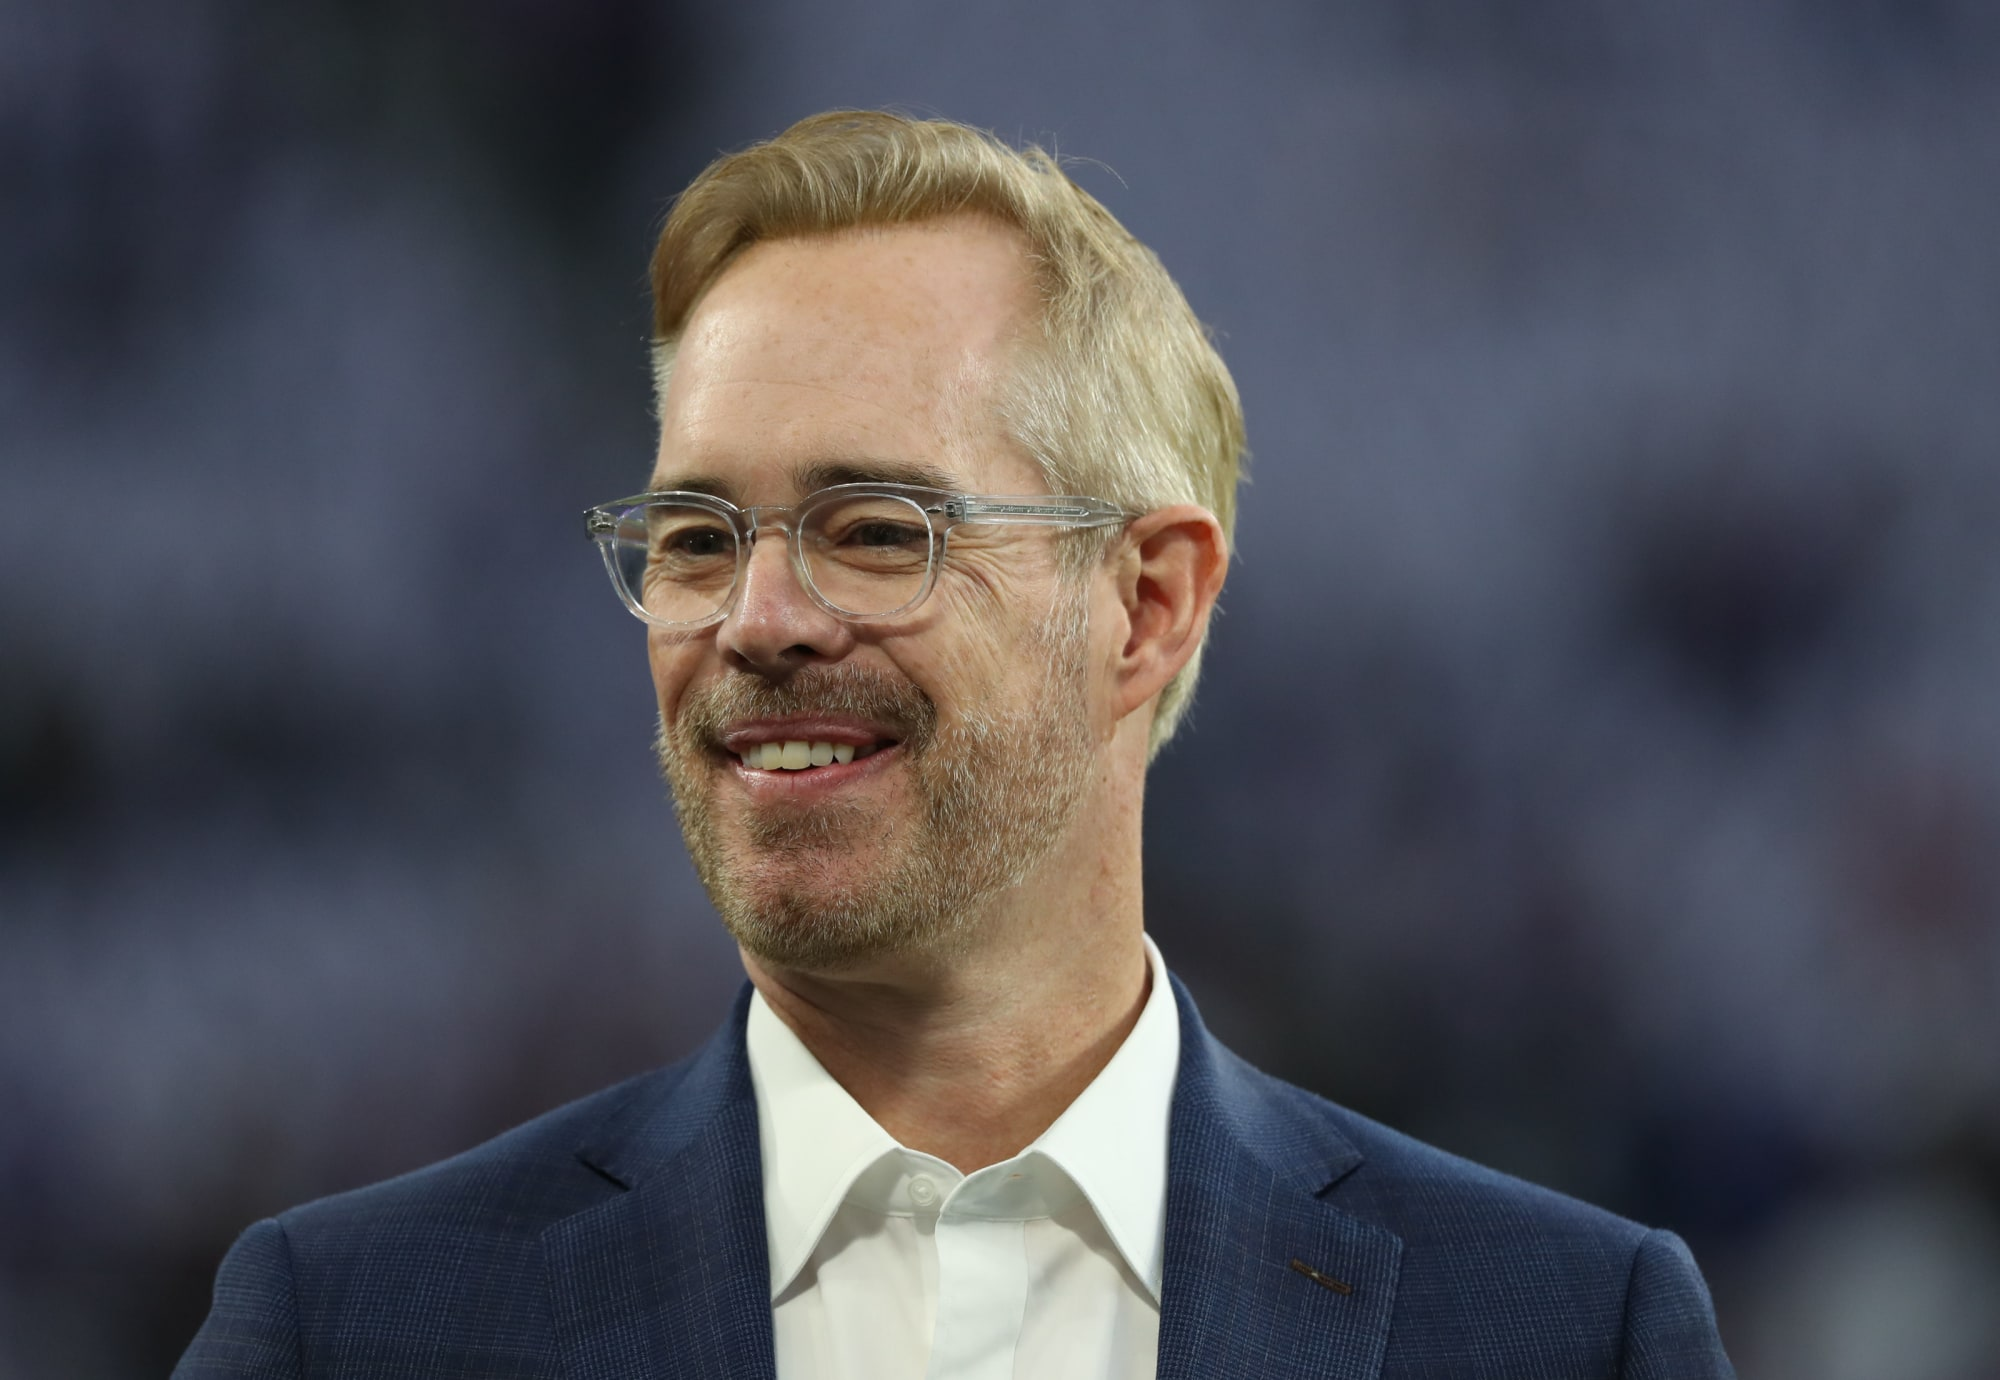 Everyone is convinced Joe Buck is rooting for the Dodgers to beat the Braves